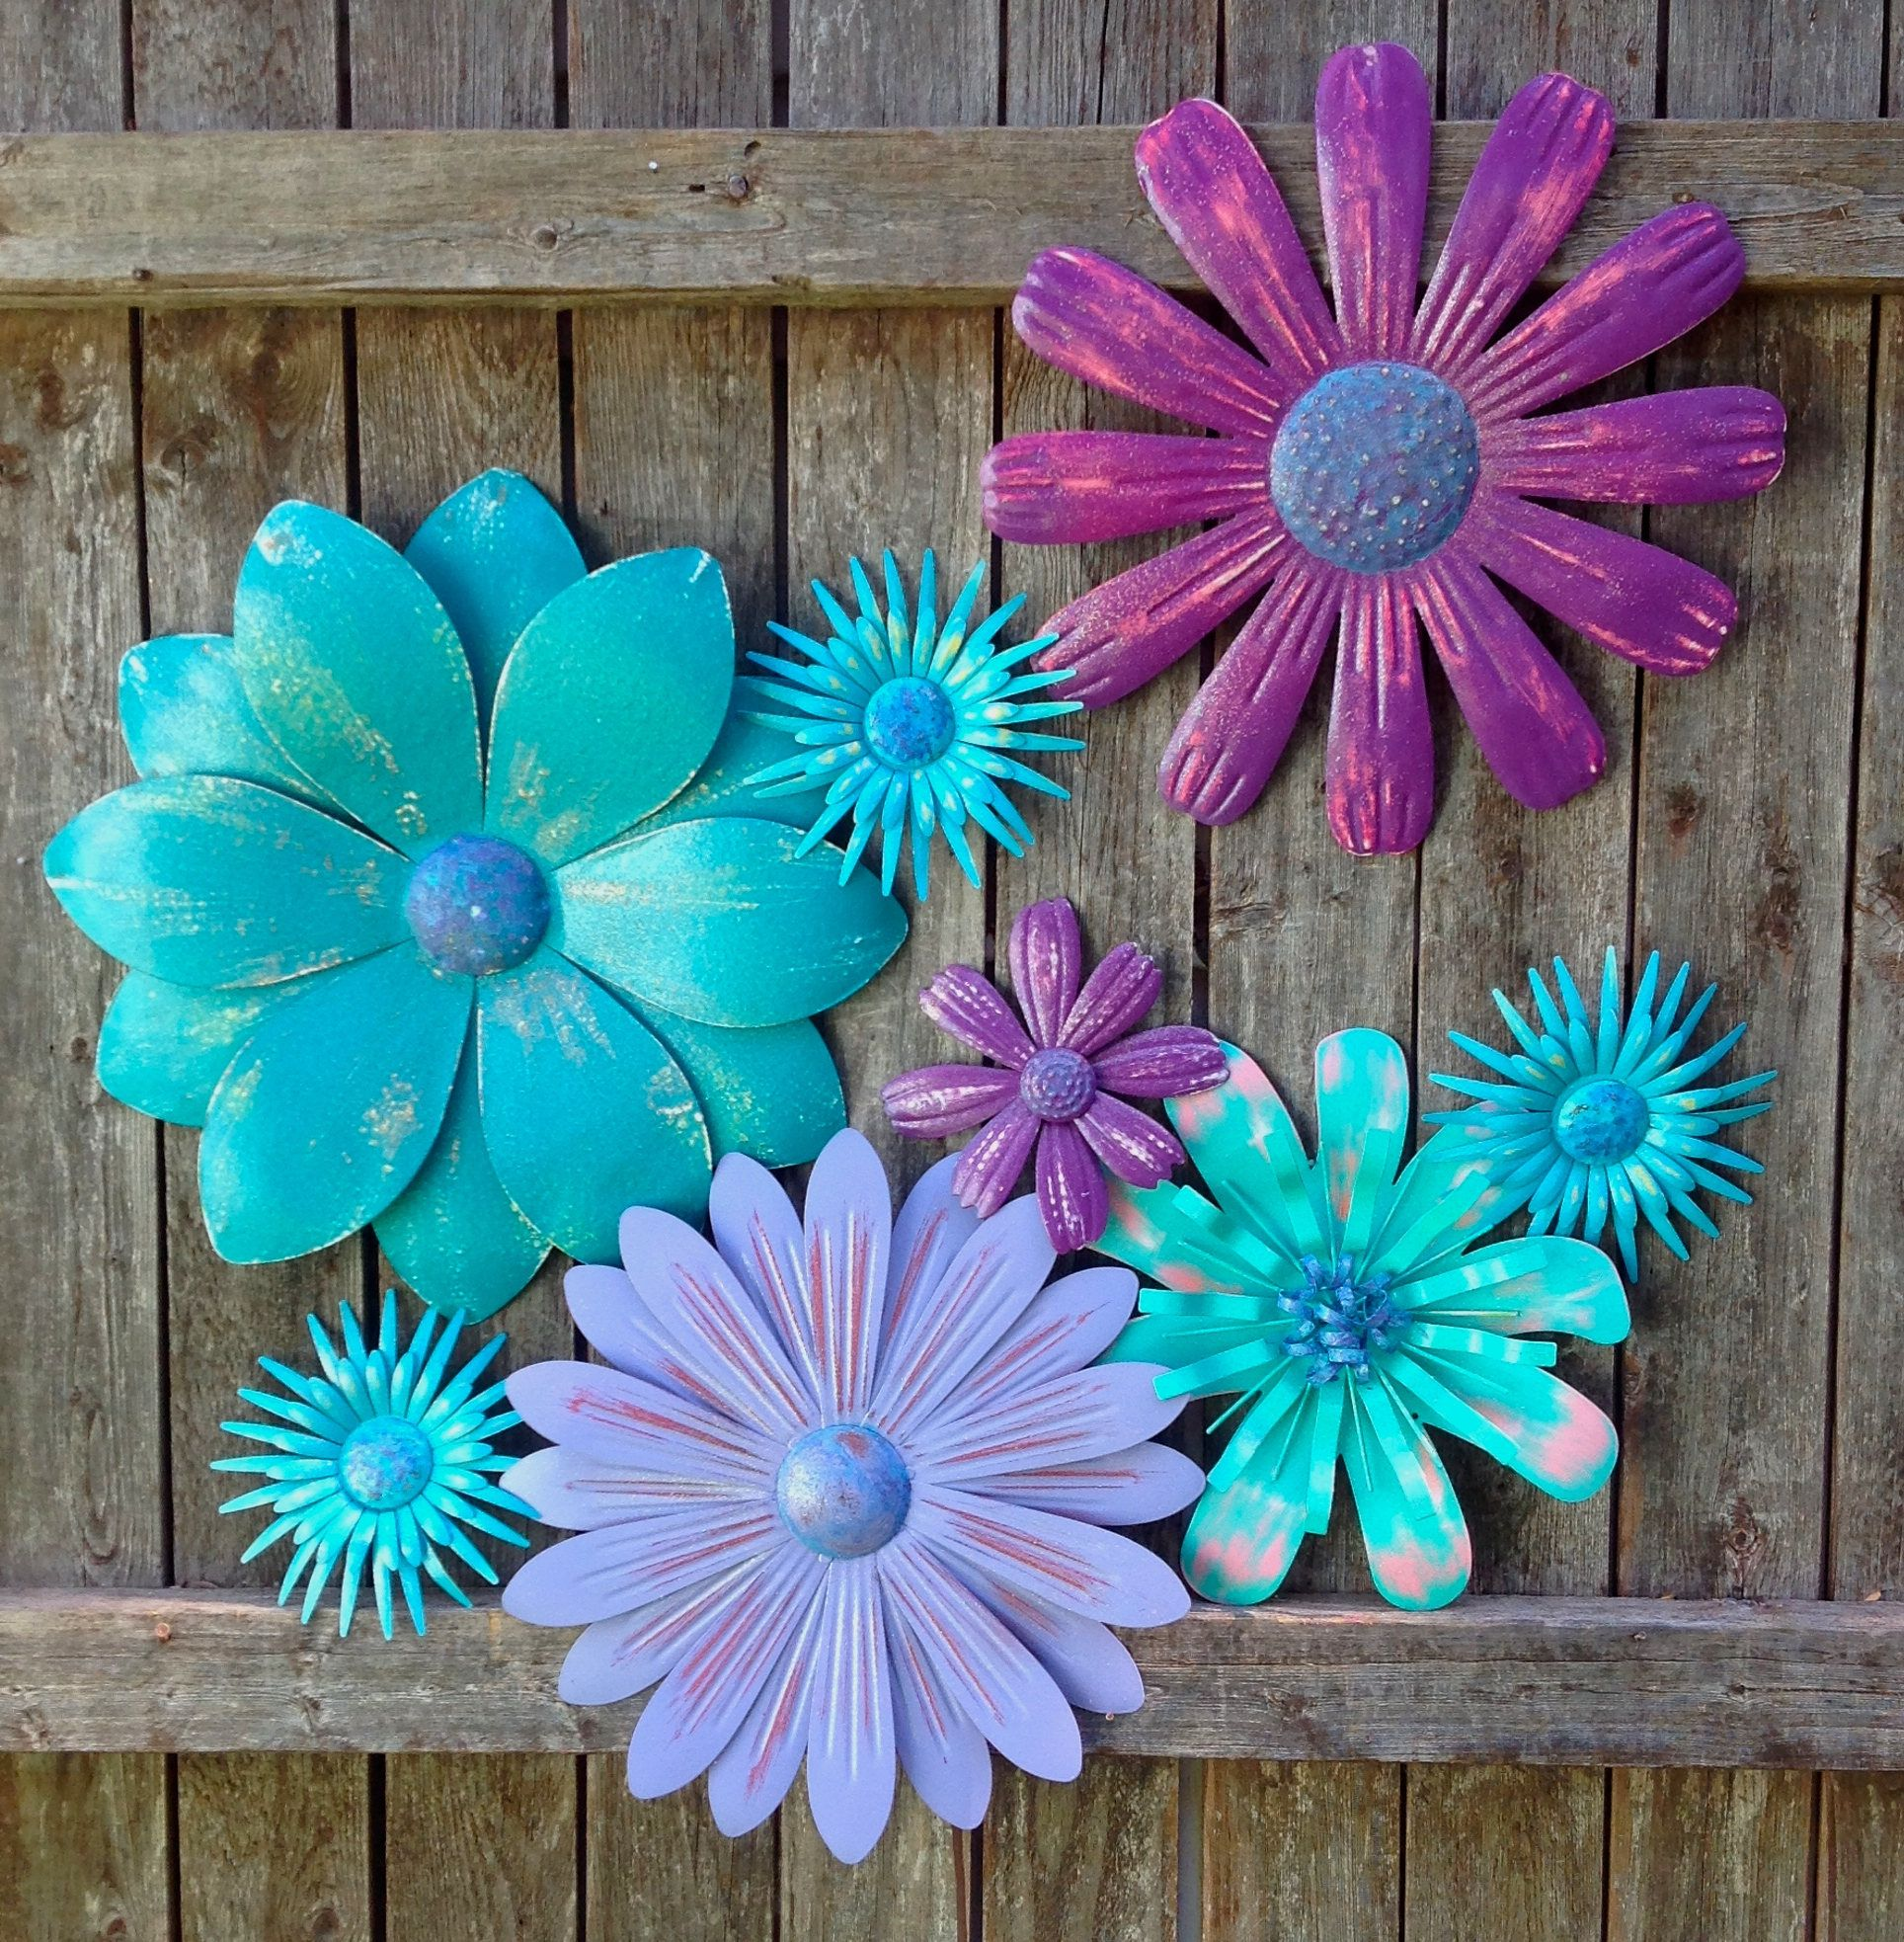 Turquoise Purple Passion Metal Fence/Wall Flowers - 9 Pc ...